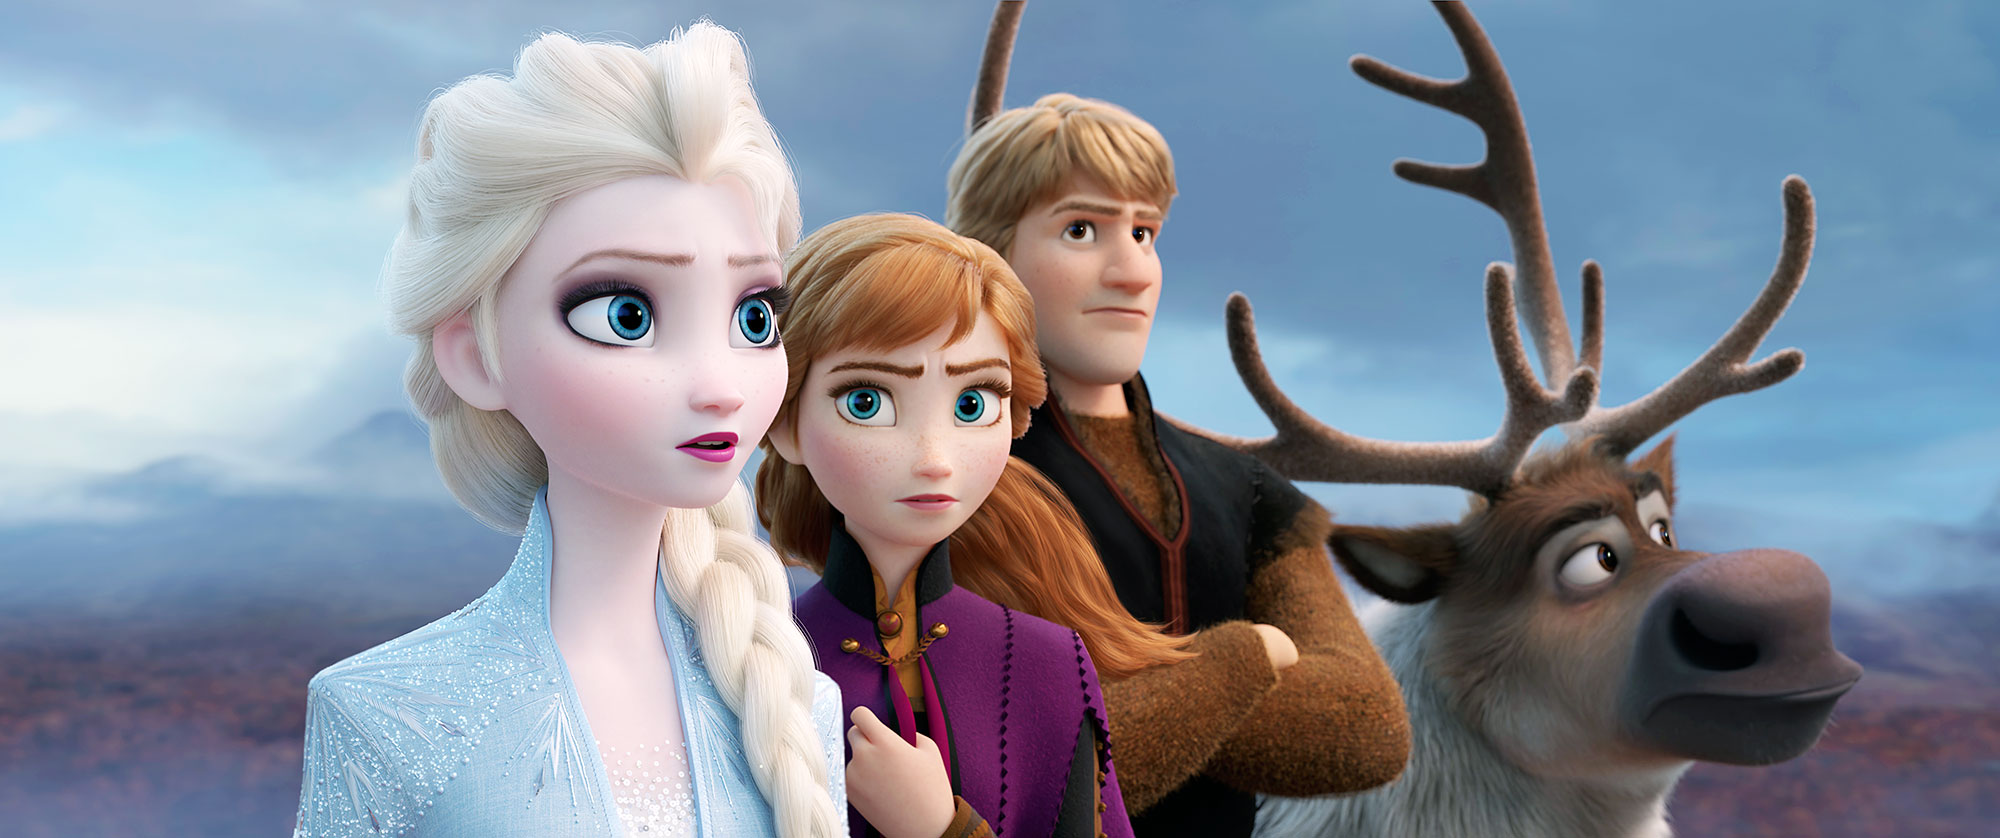 Elsa, Anna and Kristoff Return in the Dramatic First Trailer for Disney's 'Frozen 2'